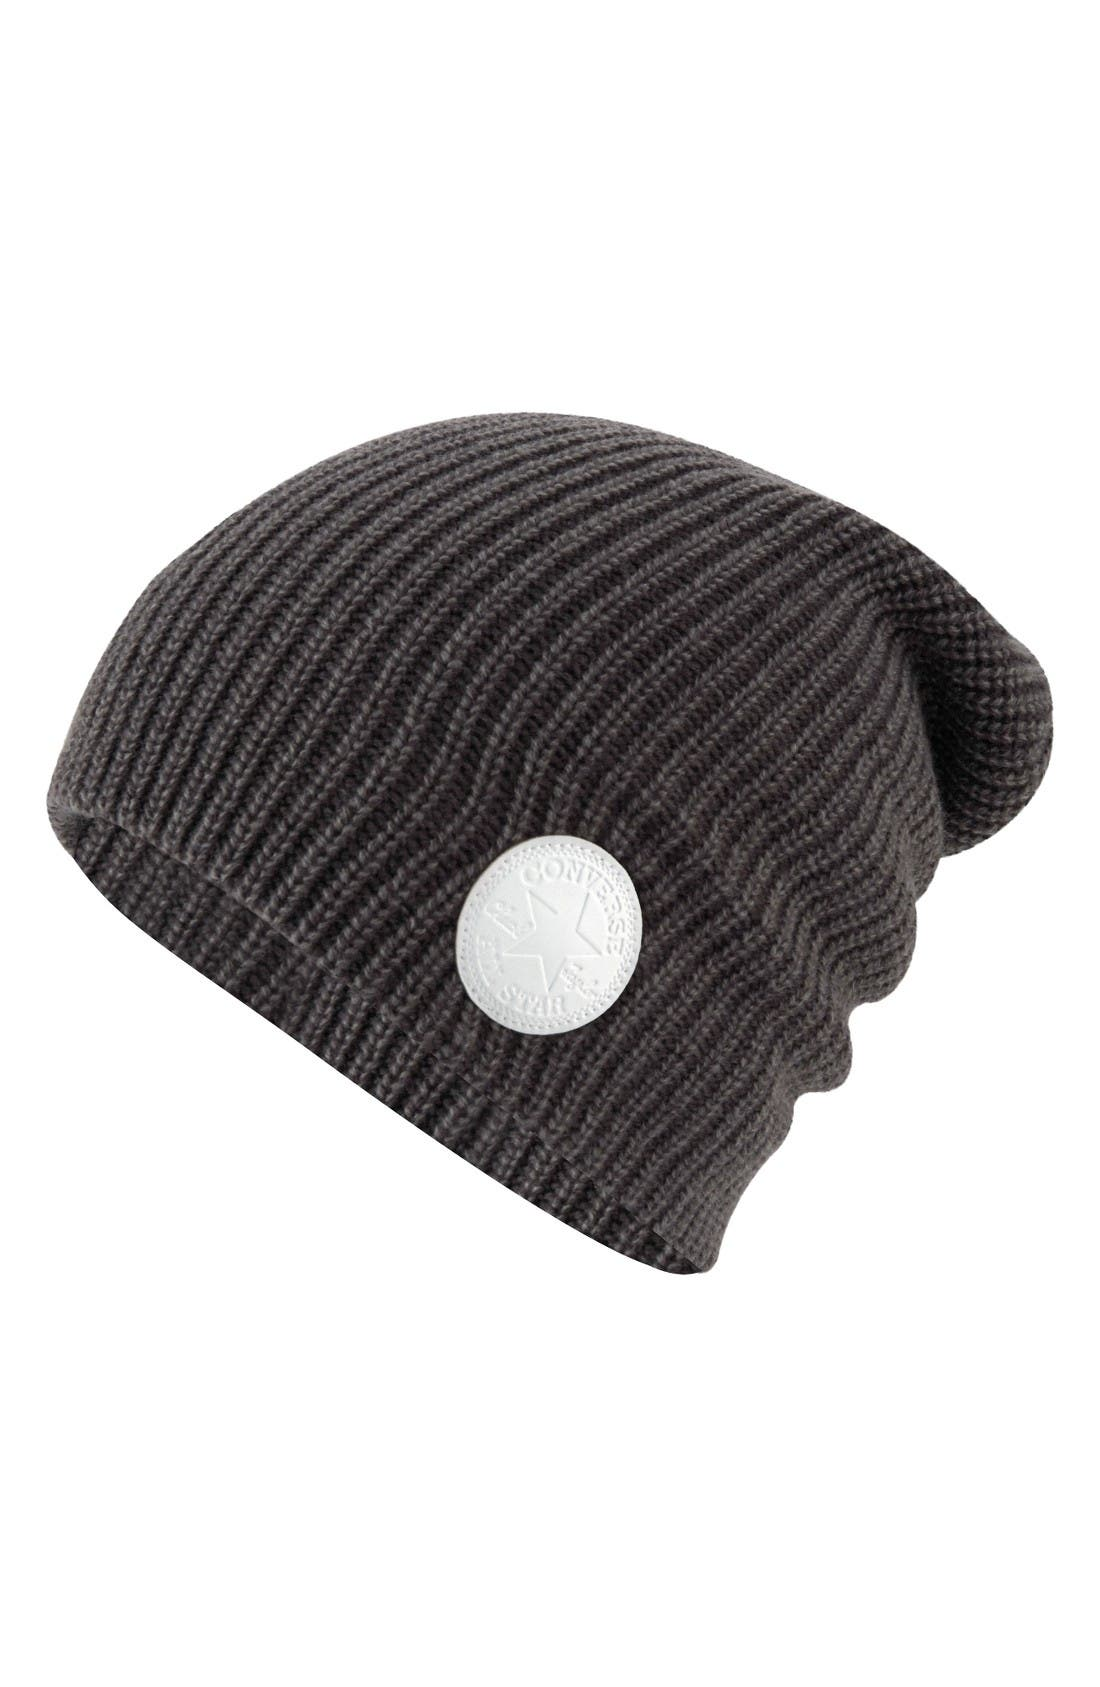 Alternate Image 1 Selected - Converse 'Winter Slouch' Knit Cap